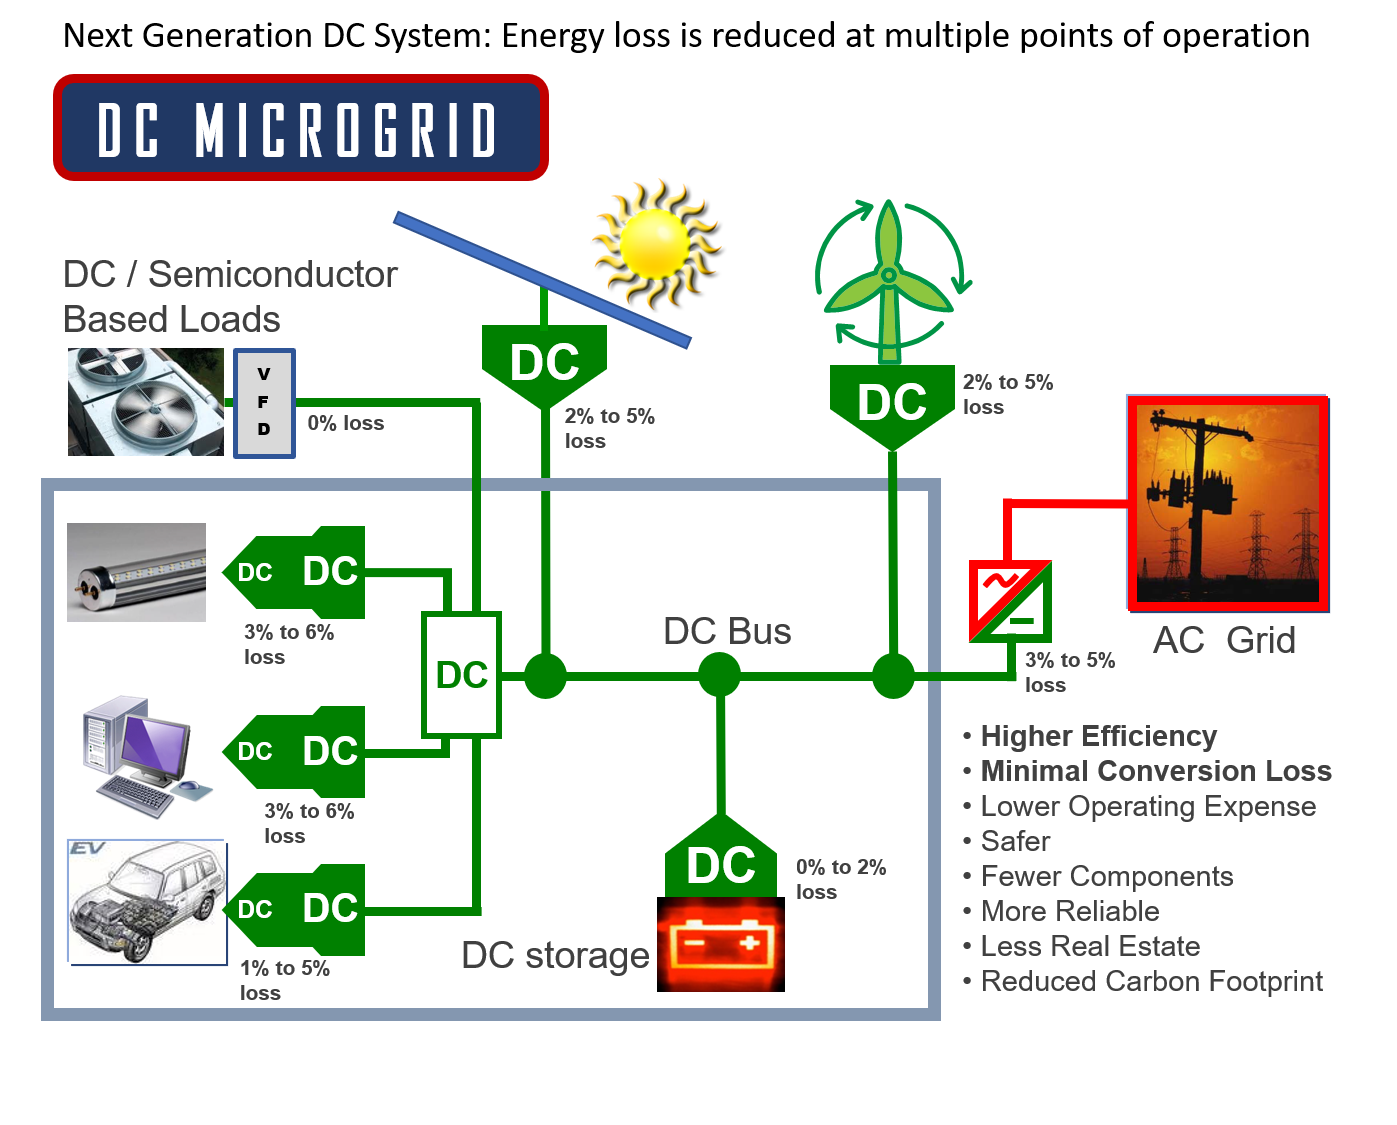 DC Microgrid - Next-Generation Efficiency and Performance